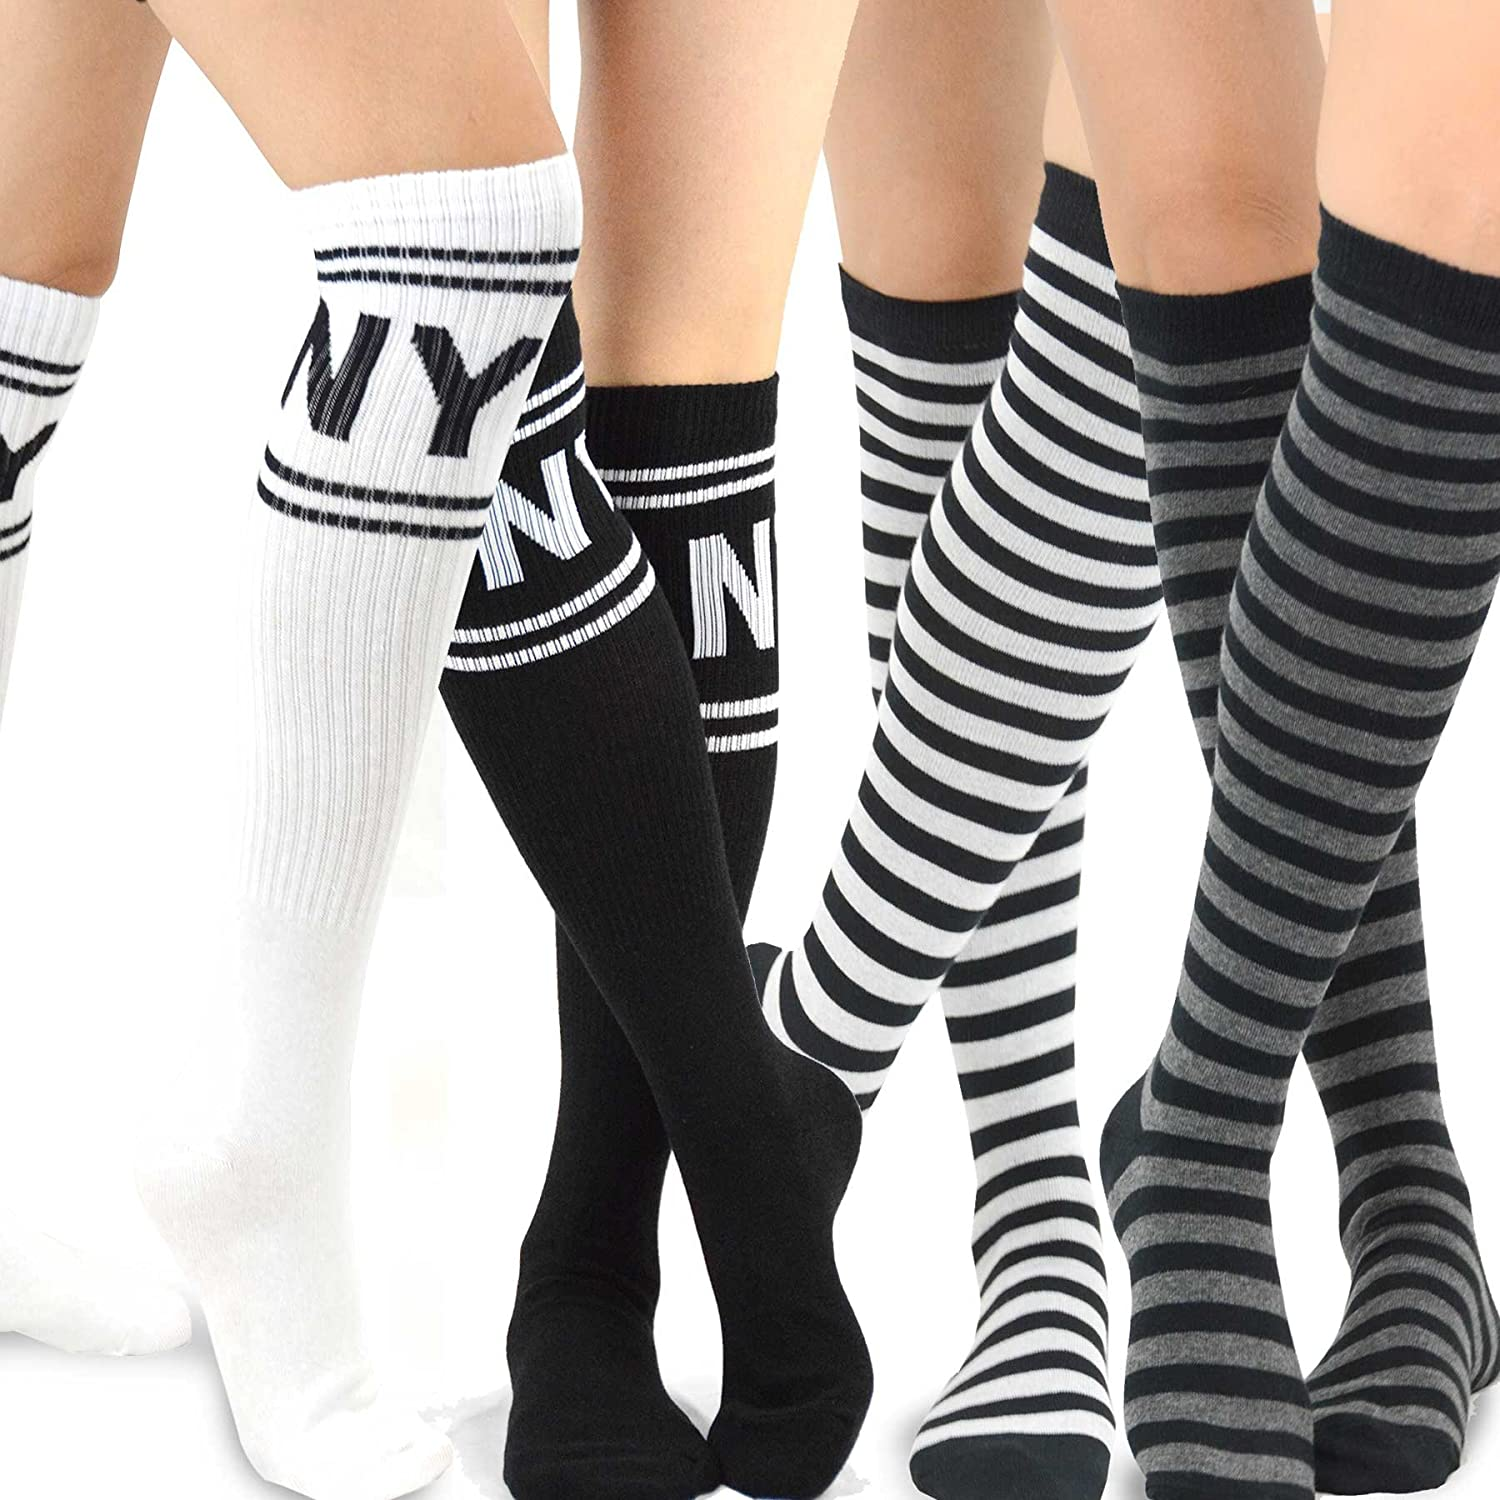 TeeHee Women's Fashion Knee High Socks - 4 Pairs Pack soxnet Inc